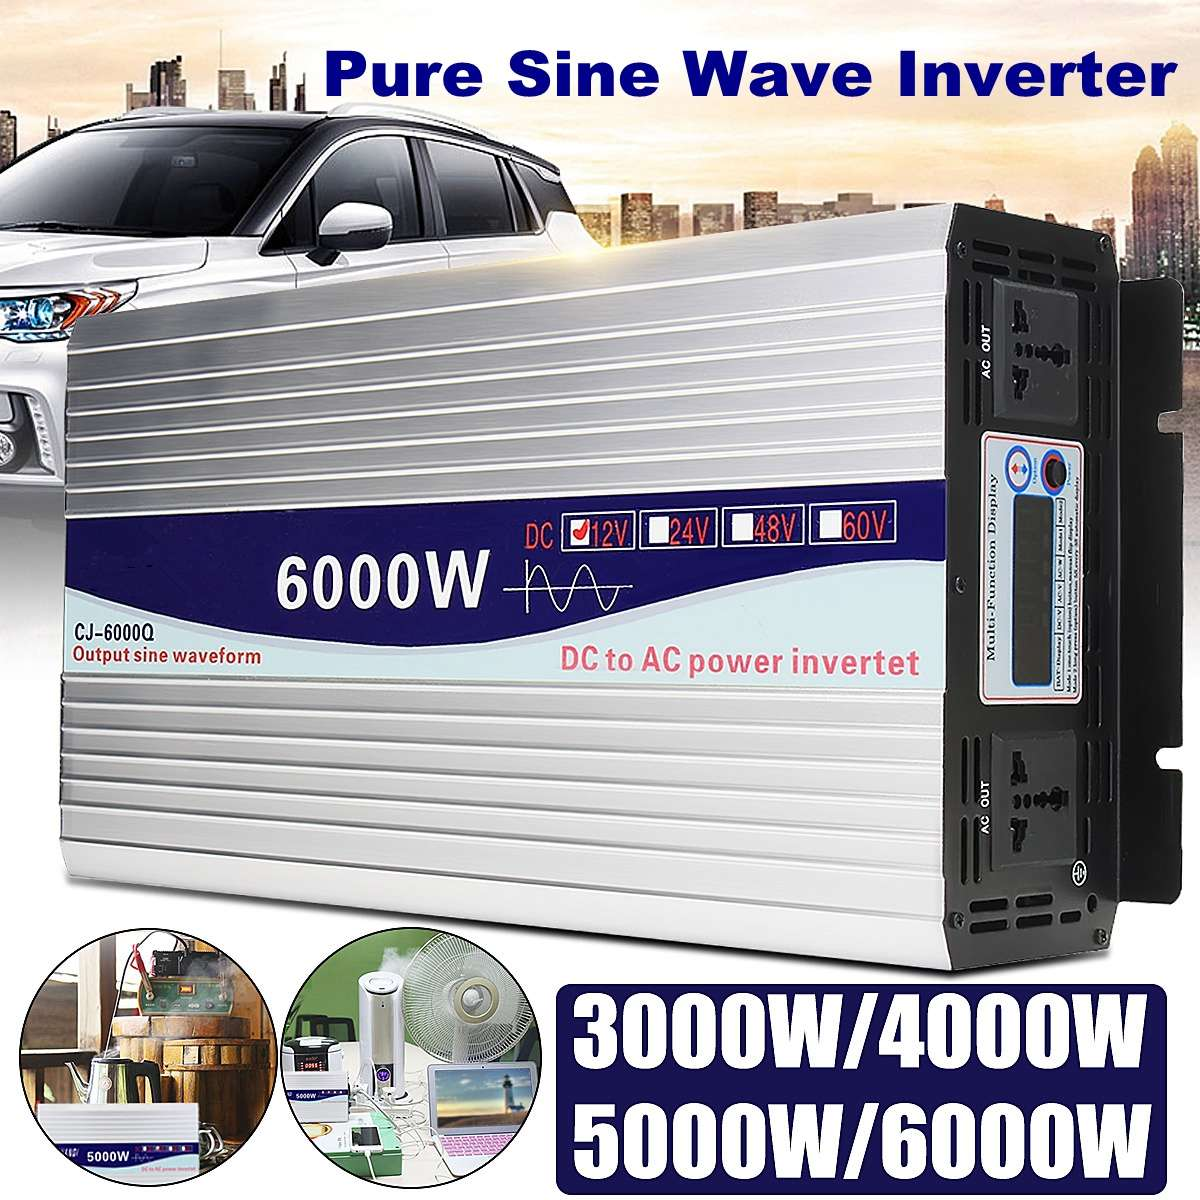 <font><b>Inverter</b></font> 12 V/24 V zu AC 220 V 3000/4000/5000/6000 W Spannung transformator reine Sinus Welle Power <font><b>Inverter</b></font> Konverter Led-anzeige image